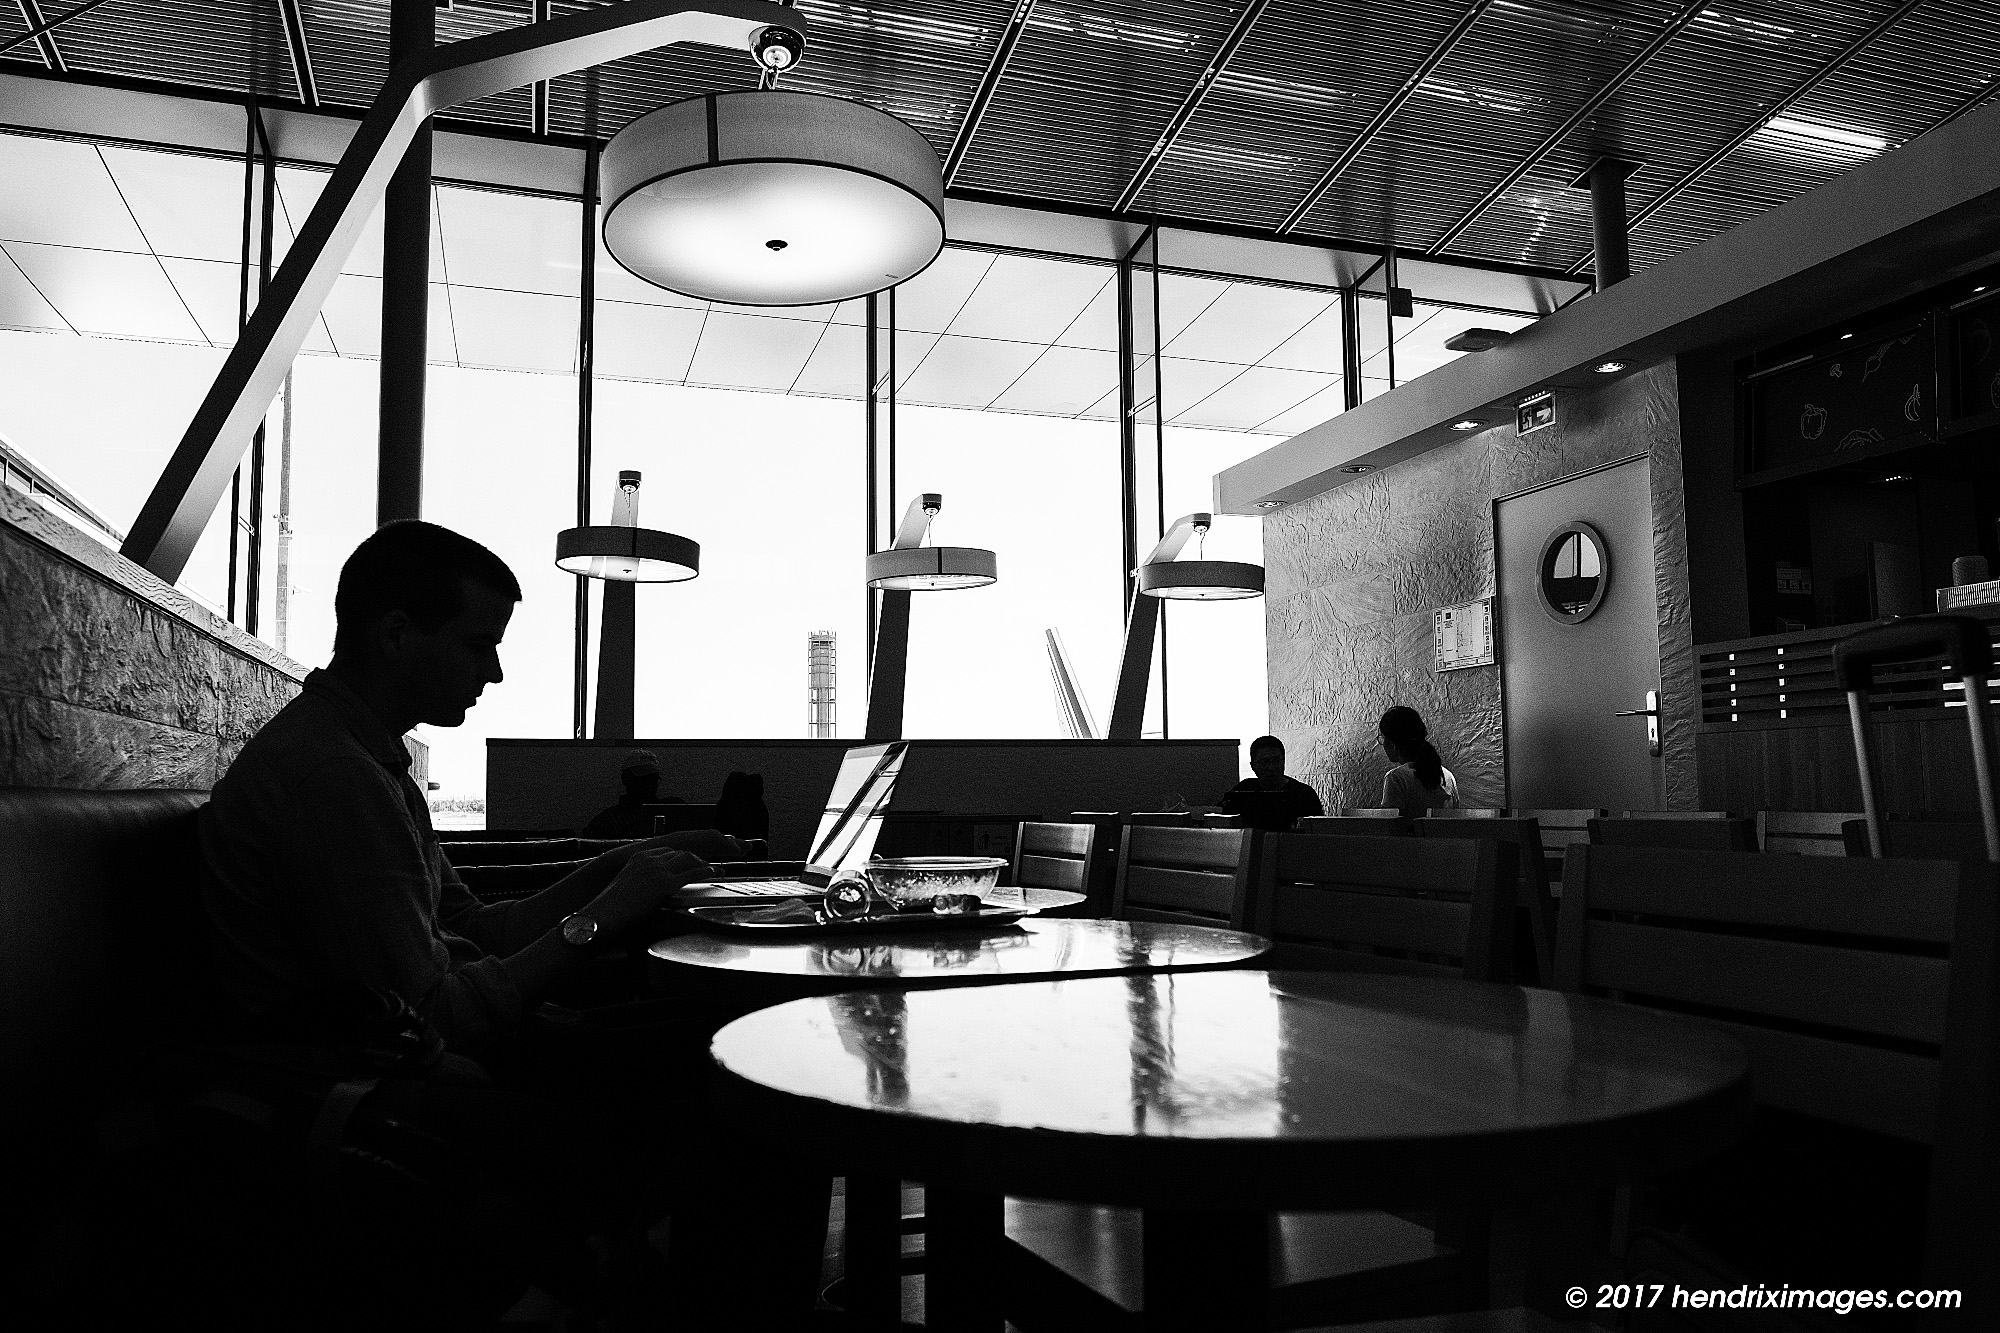 Waiting at the Airport, seen with Fuji X-Pro2 and XF 16 mm f1.4 WR,SOOC ACROS JPEG